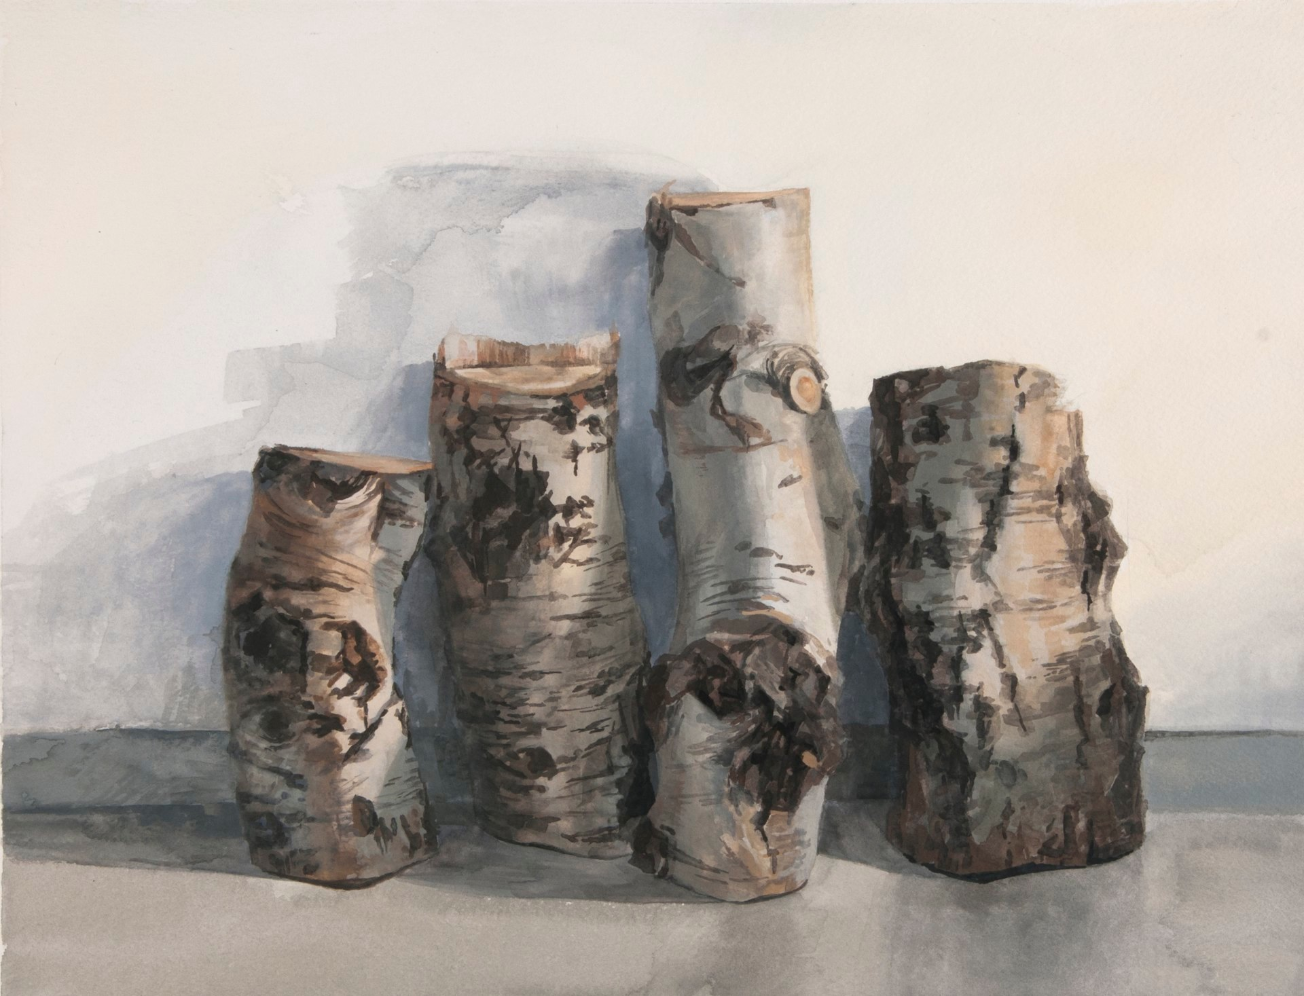 Stump Study , 2013. Gouache on paper. 11 x 15 inches. Collection of the artist.